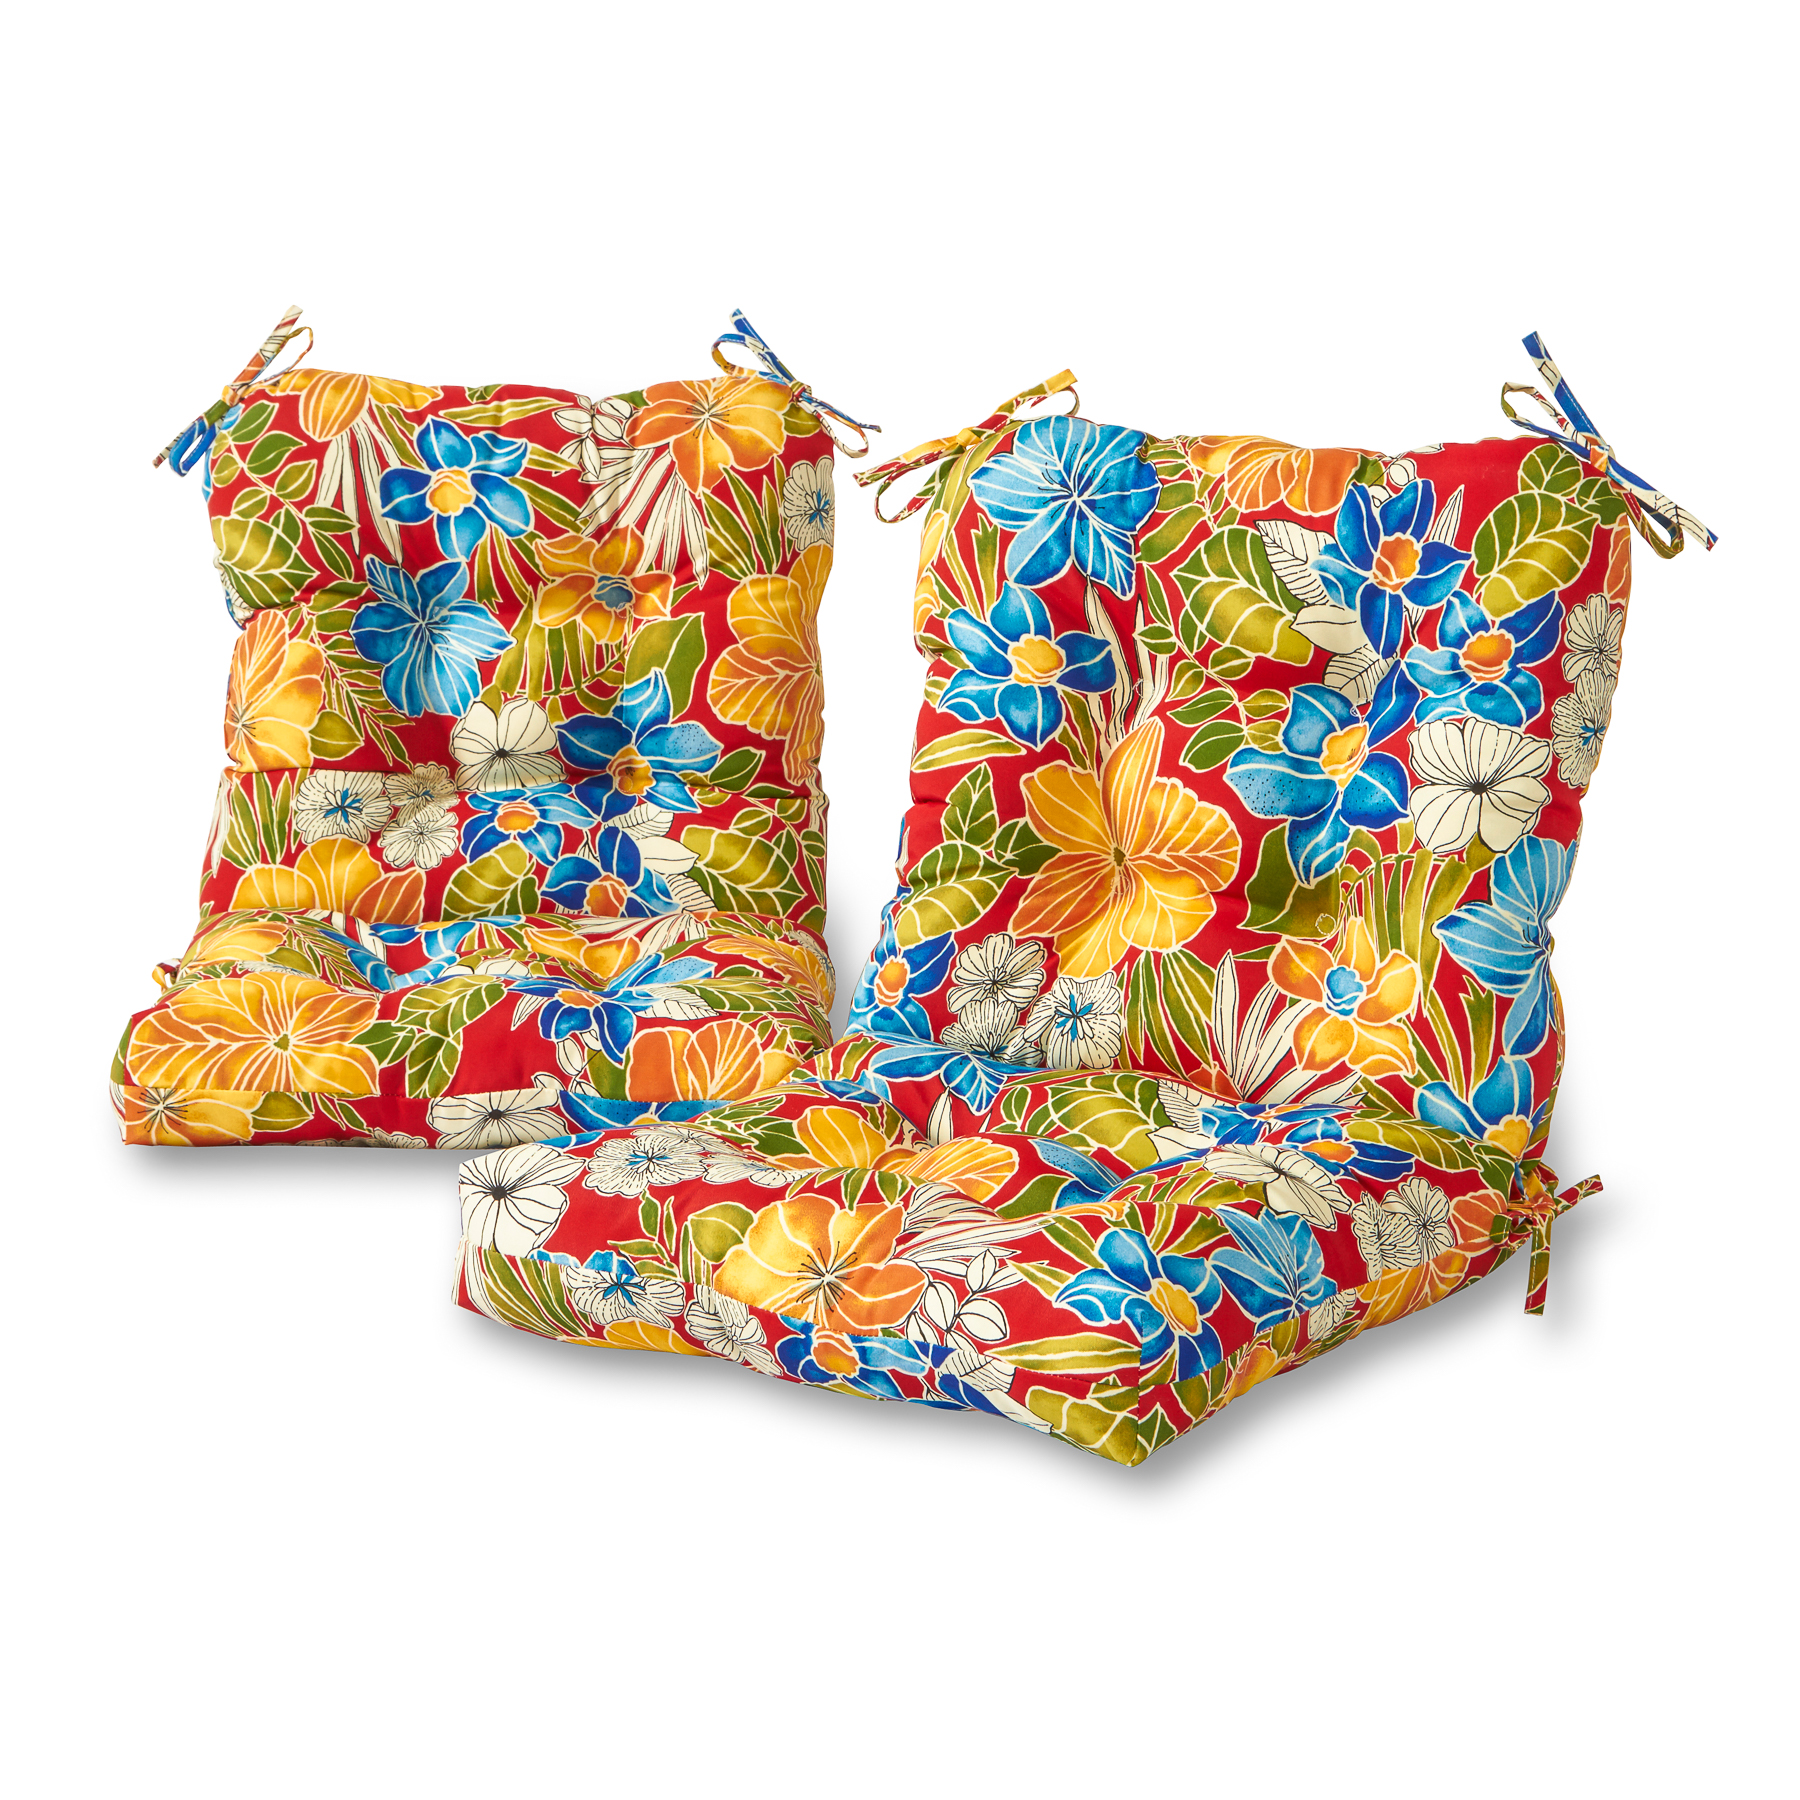 Greendale Home Fashions Aloha Floral Outdoor Chair Cushion, Set of 2